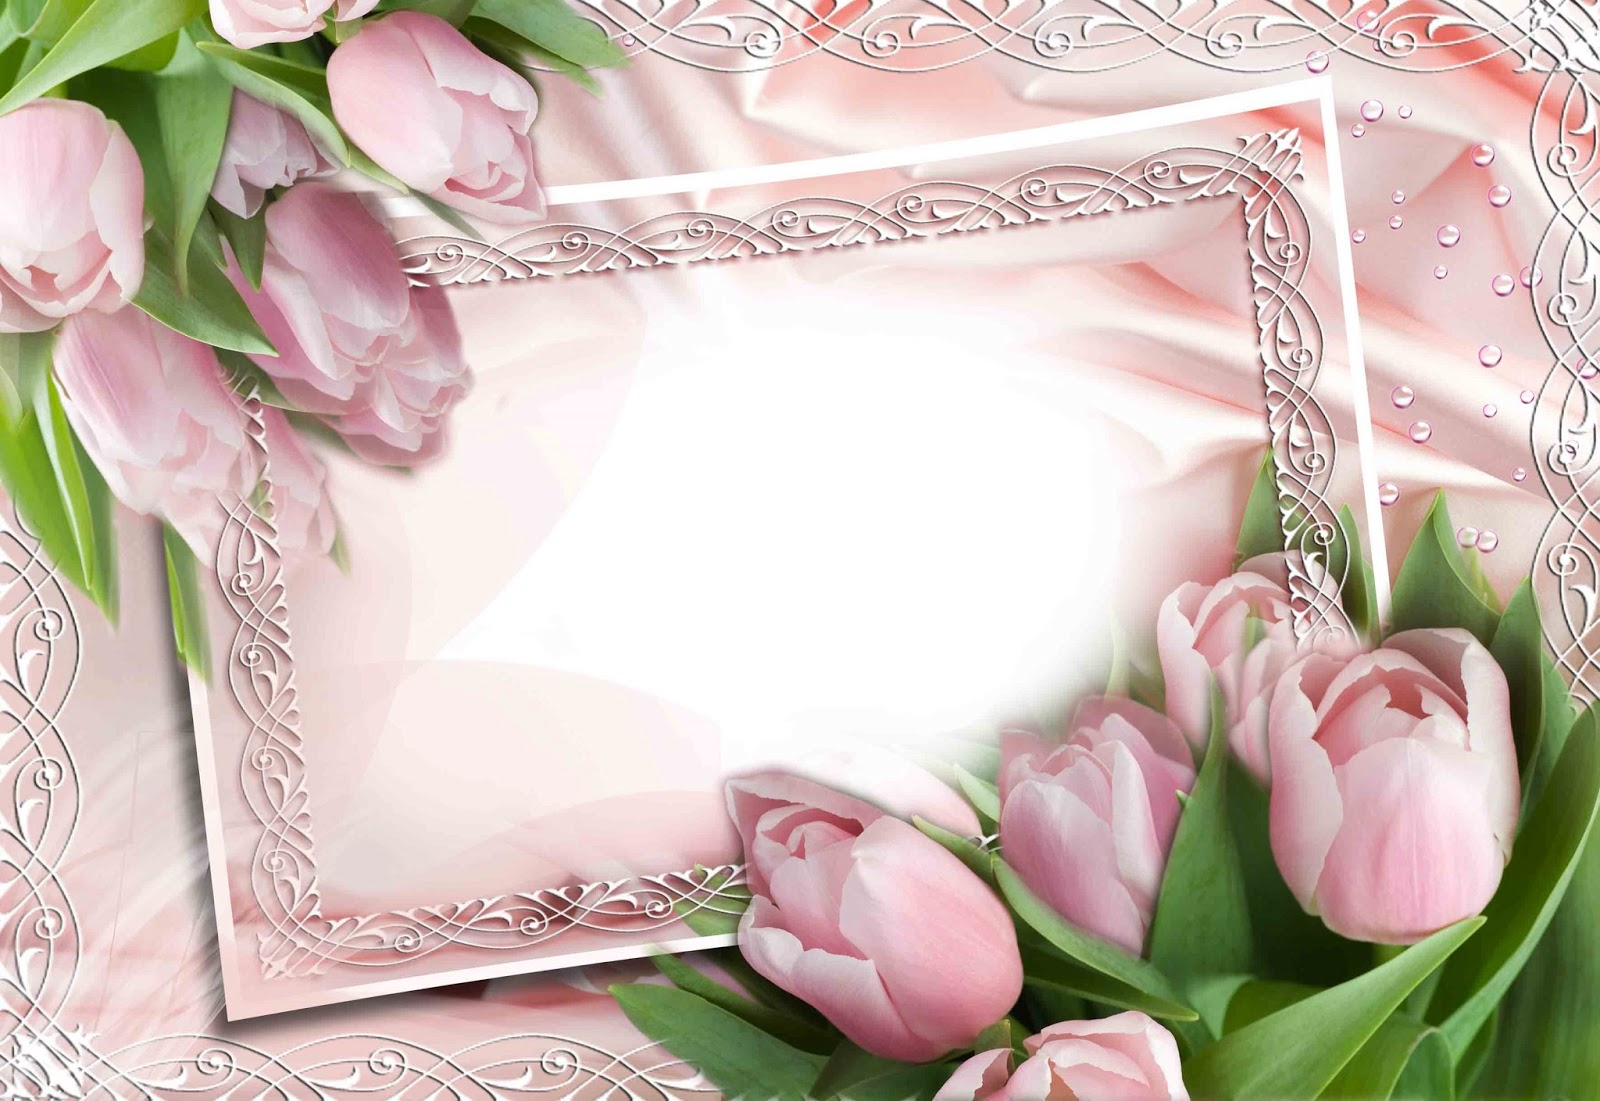 Flower Frames Free Download Free Download Wallpaper (1600 x 1101 ...